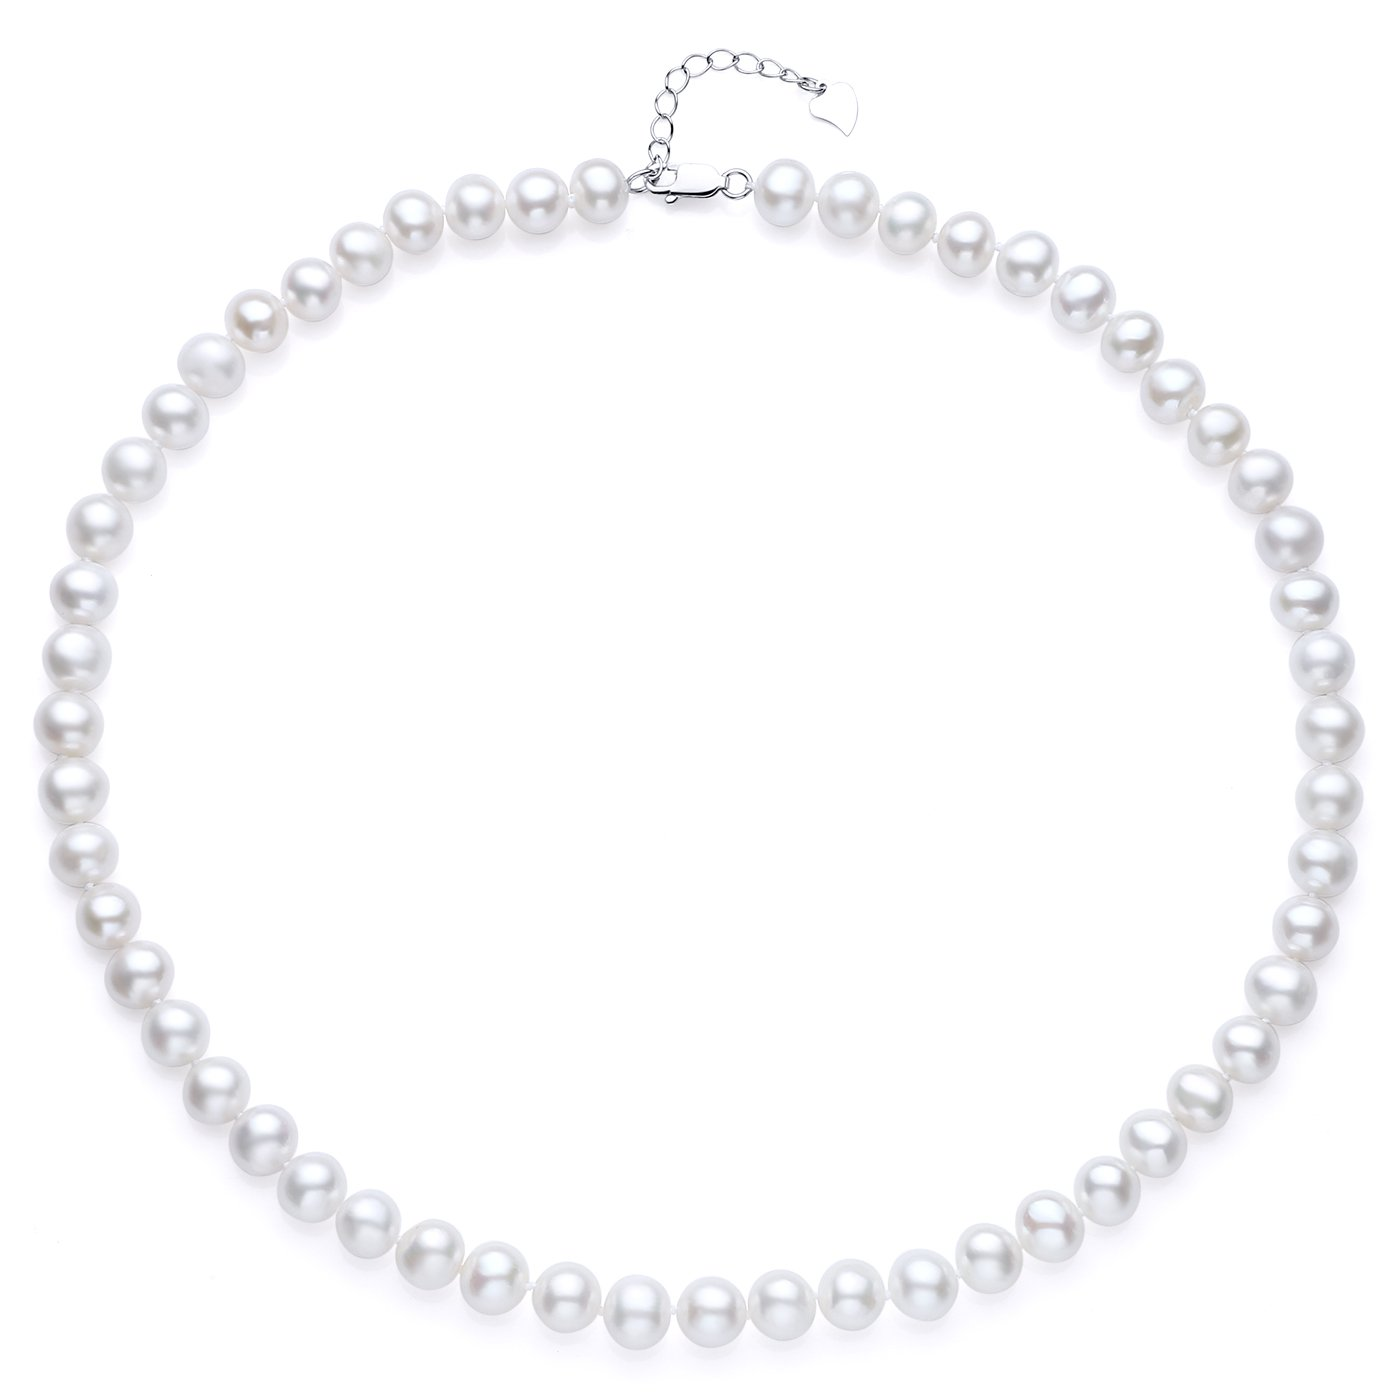 Sterling Silver AA Quality White Freshwater Cultured Pearl Necklace, 18 Inch JORA 1007652